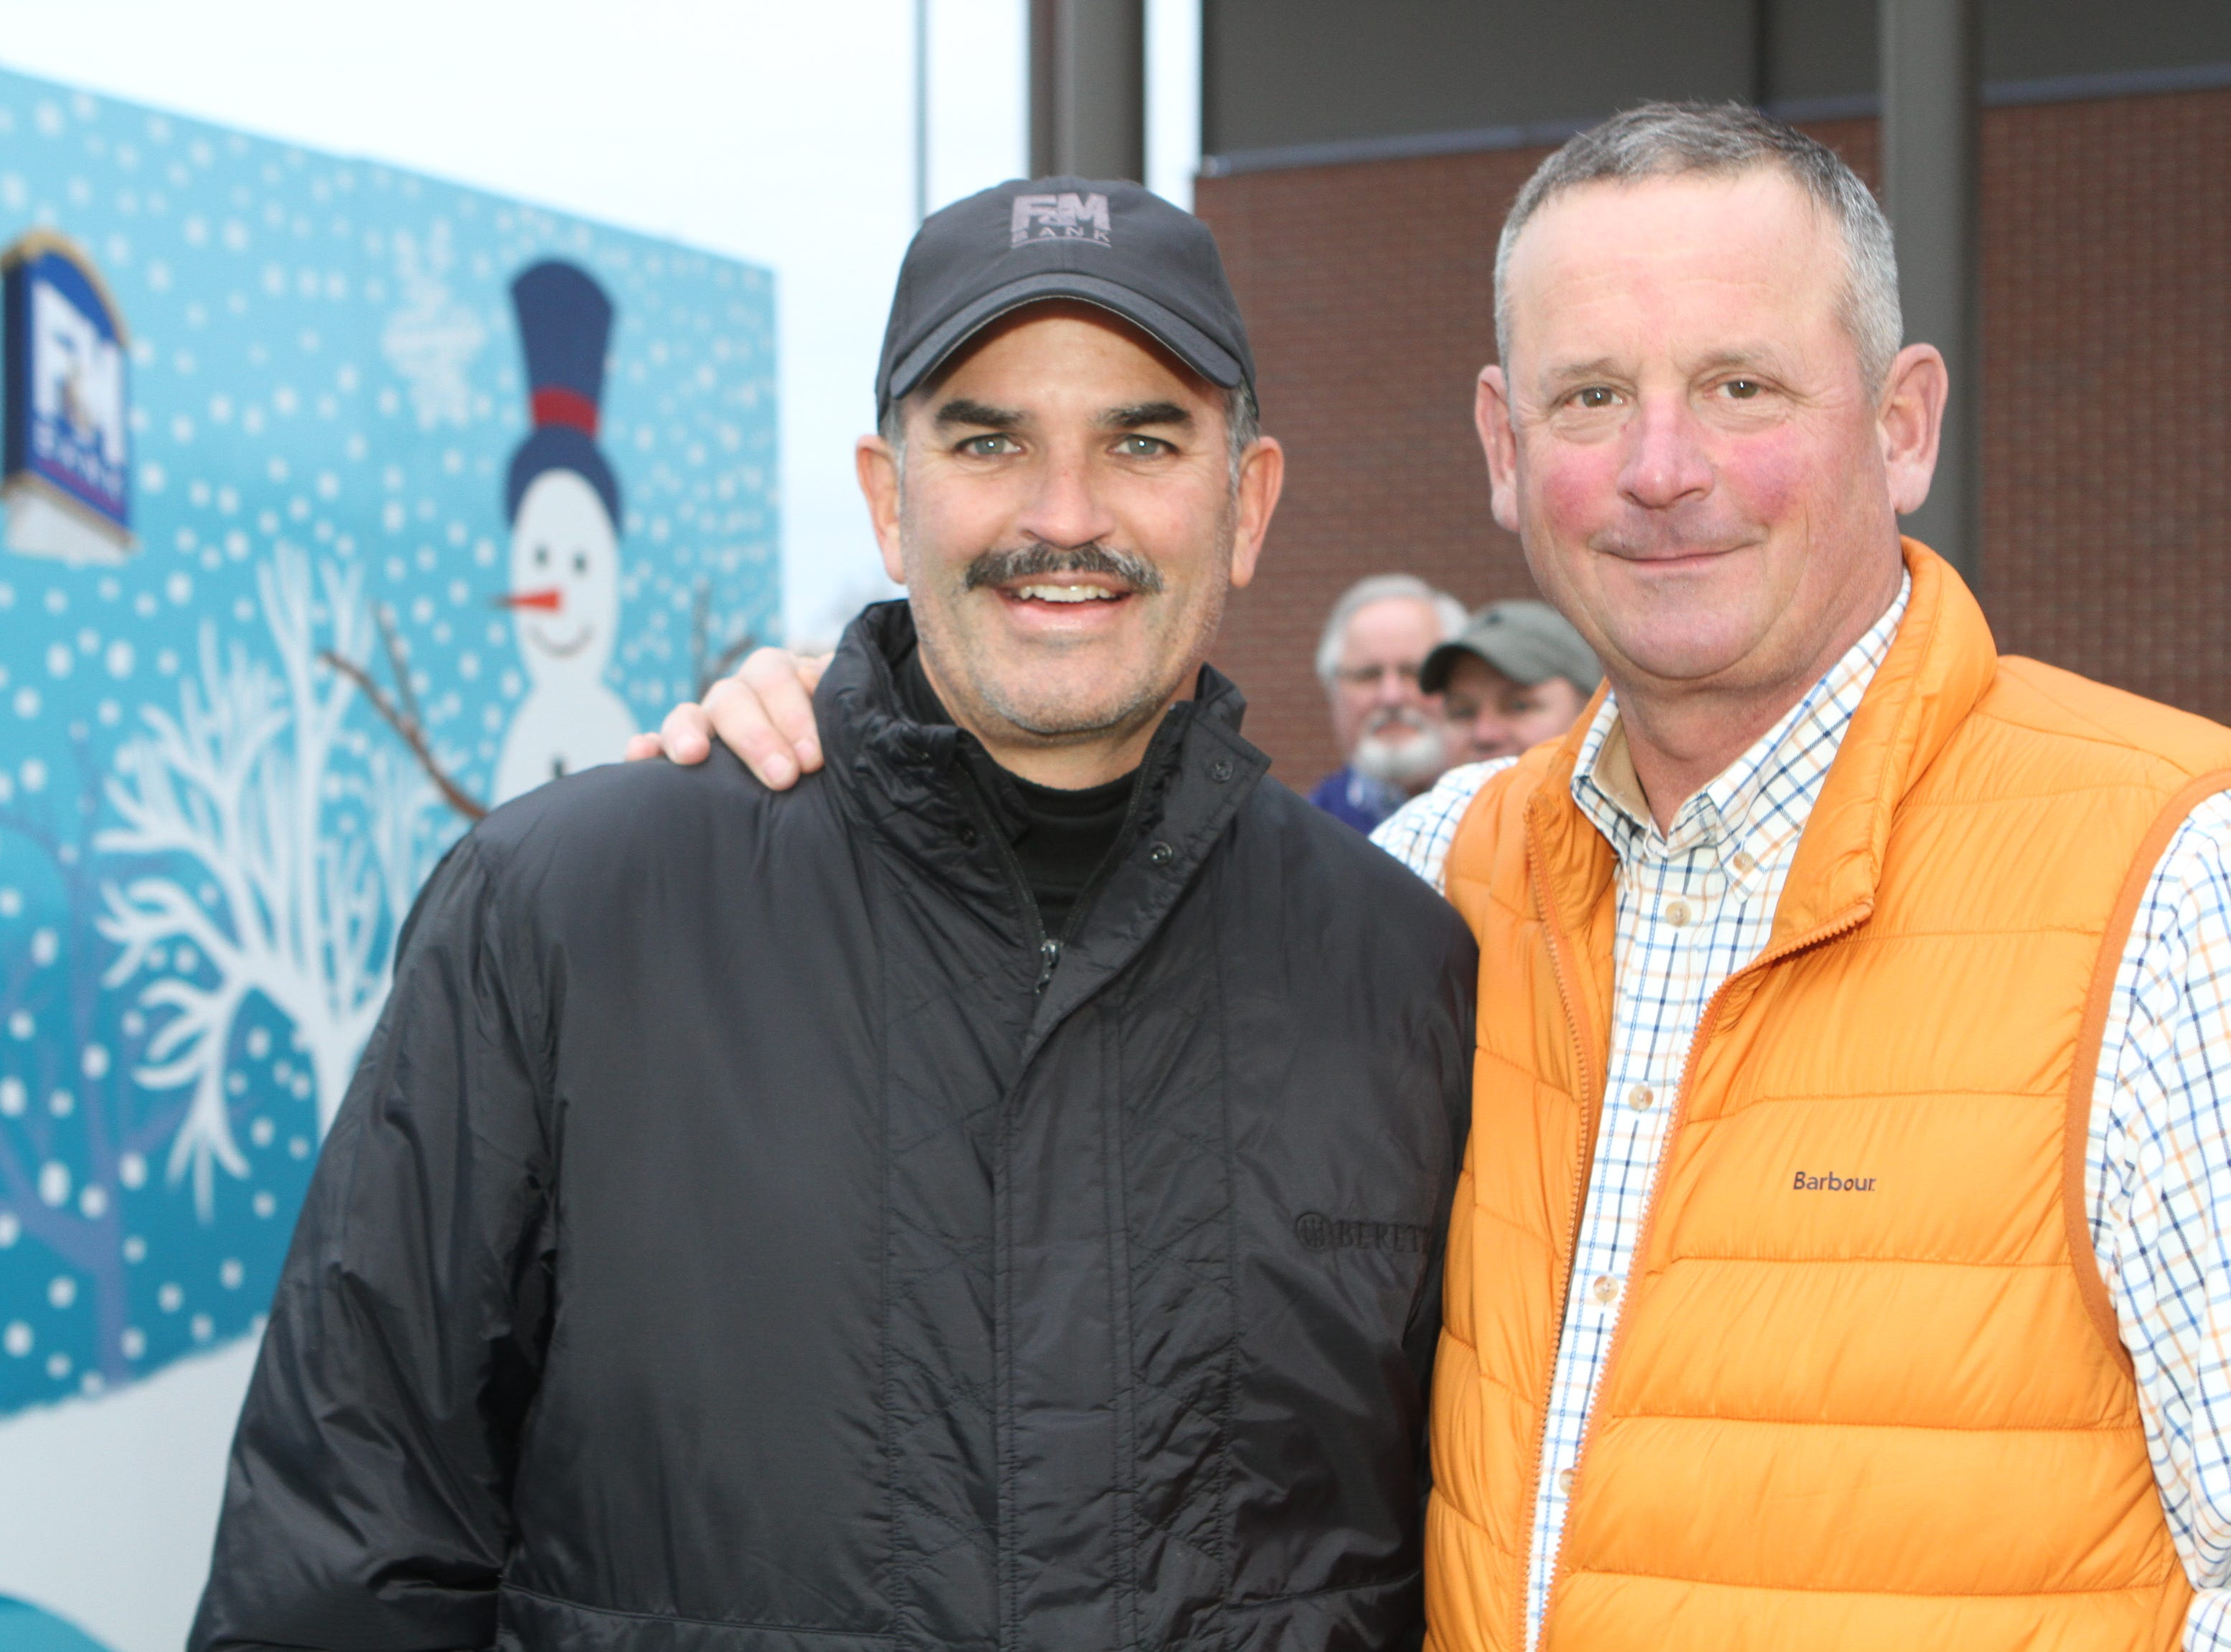 Charlie Koon and Montgomery County Mayor Jim Durrett at the Downtown Commons Winter Ice Rink opening on Friday, Nov. 23, 2018.